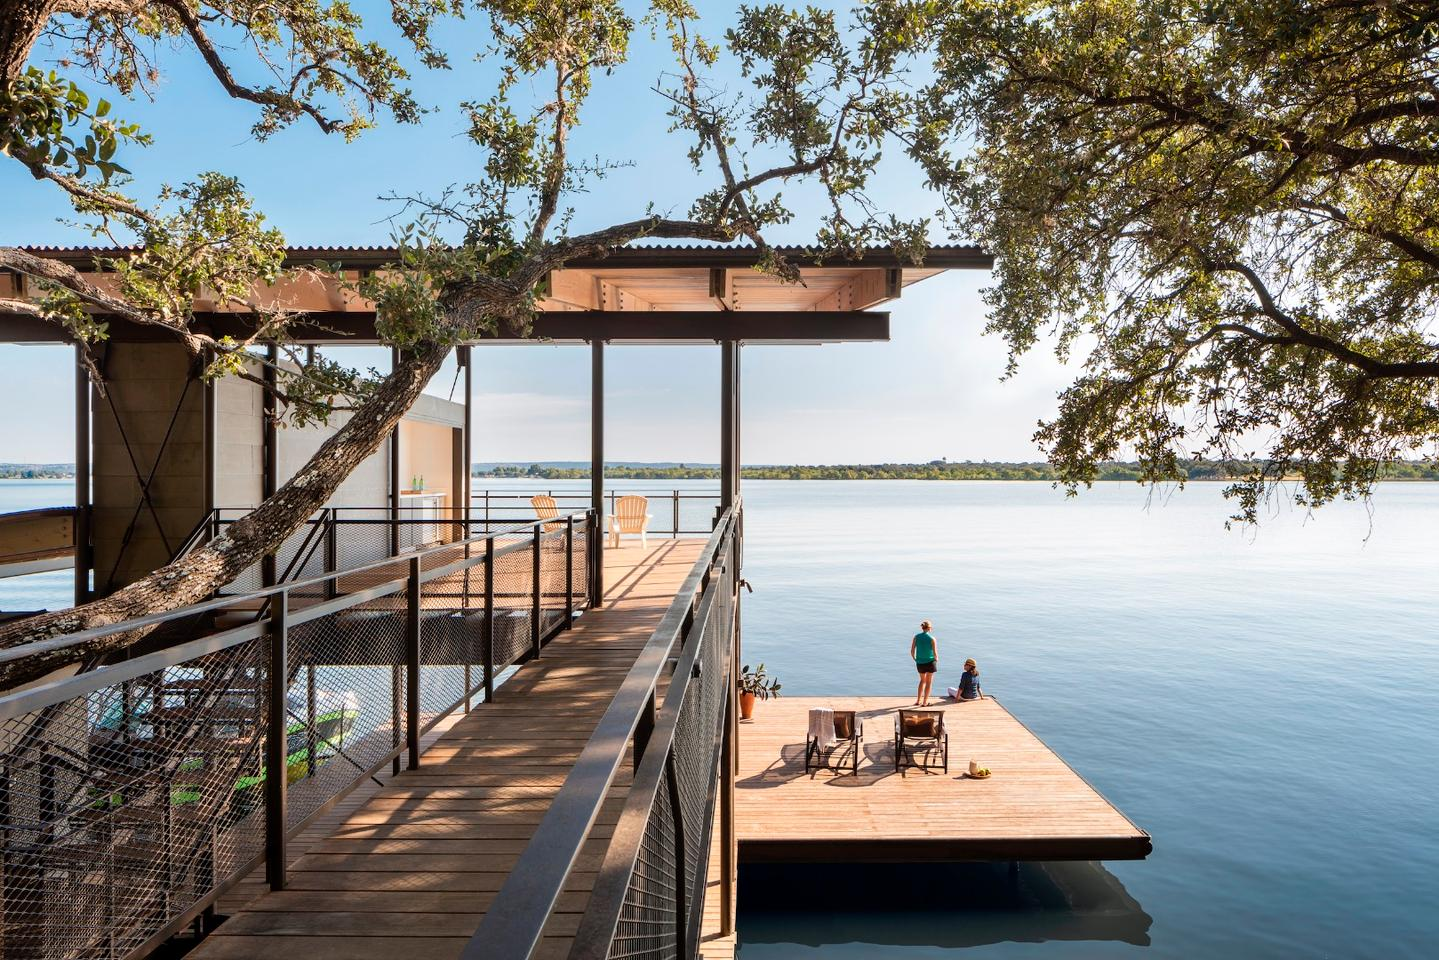 This beautiful modern take on the lake house in Marble Falls, Texas, was designed by Lake Flato Architects. It's calledBlue Lake Retreat